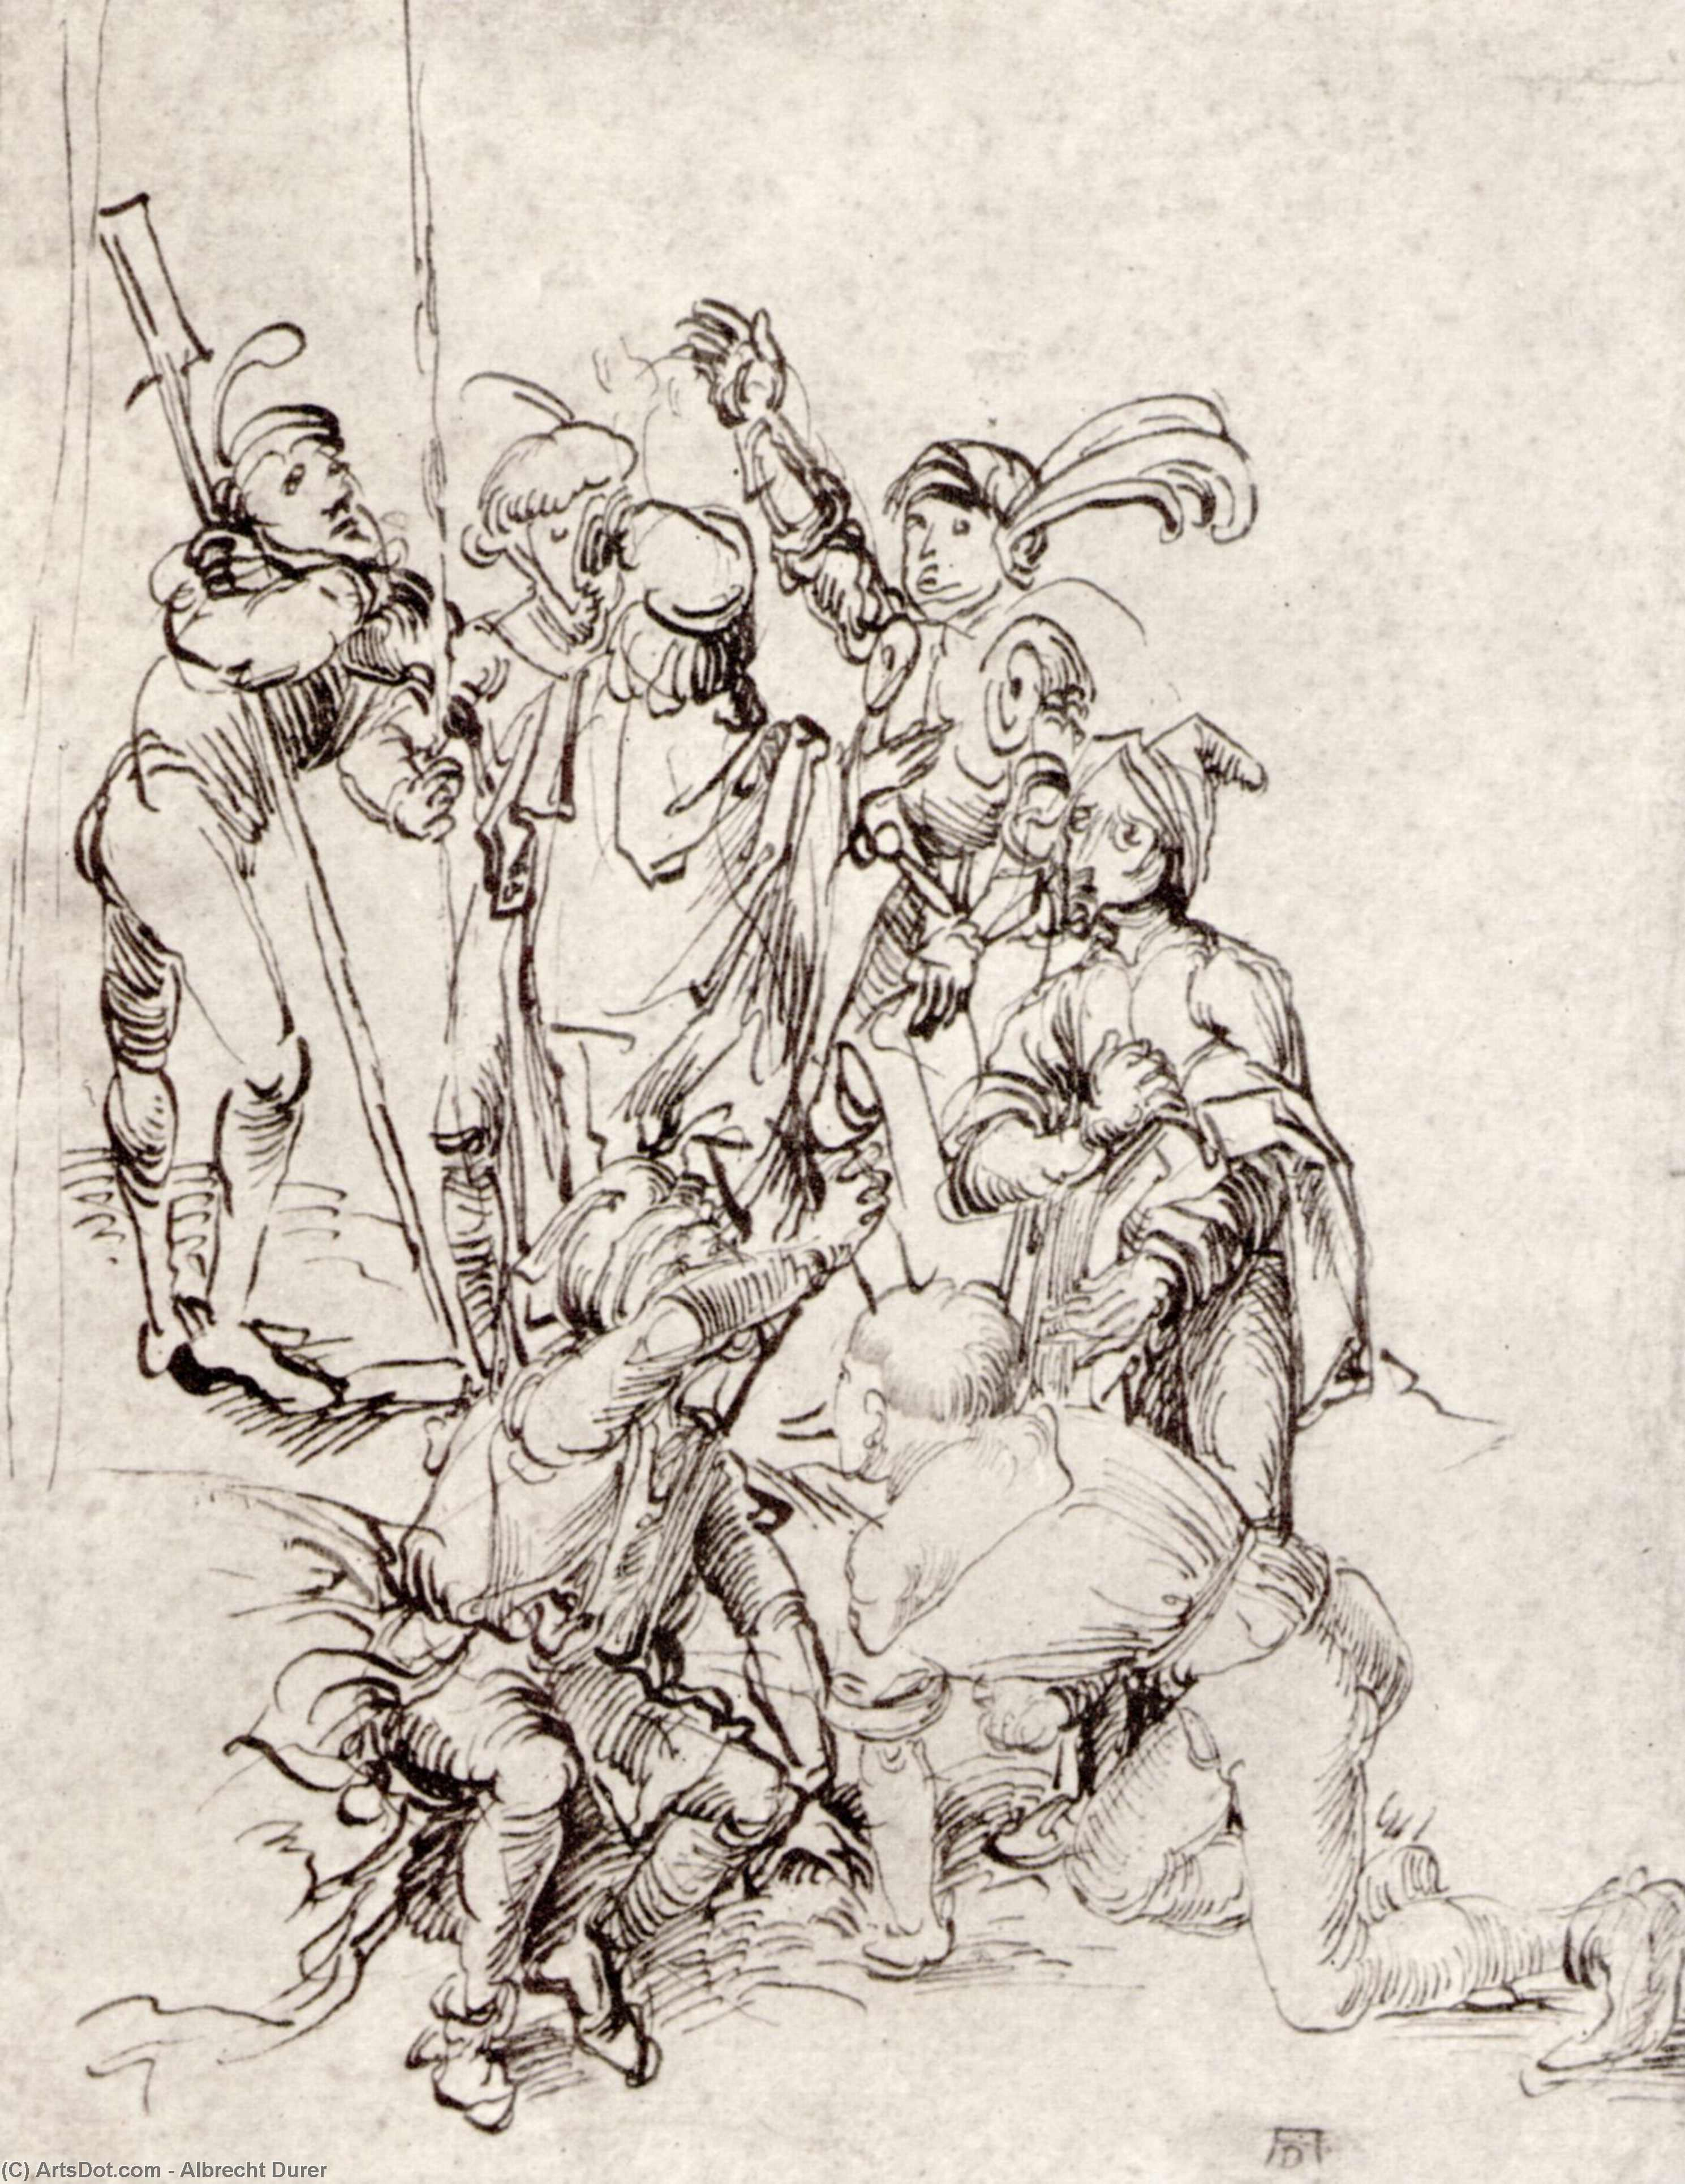 a biography of the artist albrecht durer Get information, facts, and pictures about albrecht durer at encyclopediacom make research projects and school reports about albrecht durer easy with credible articles from our free, online encyclopedia and dictionary.